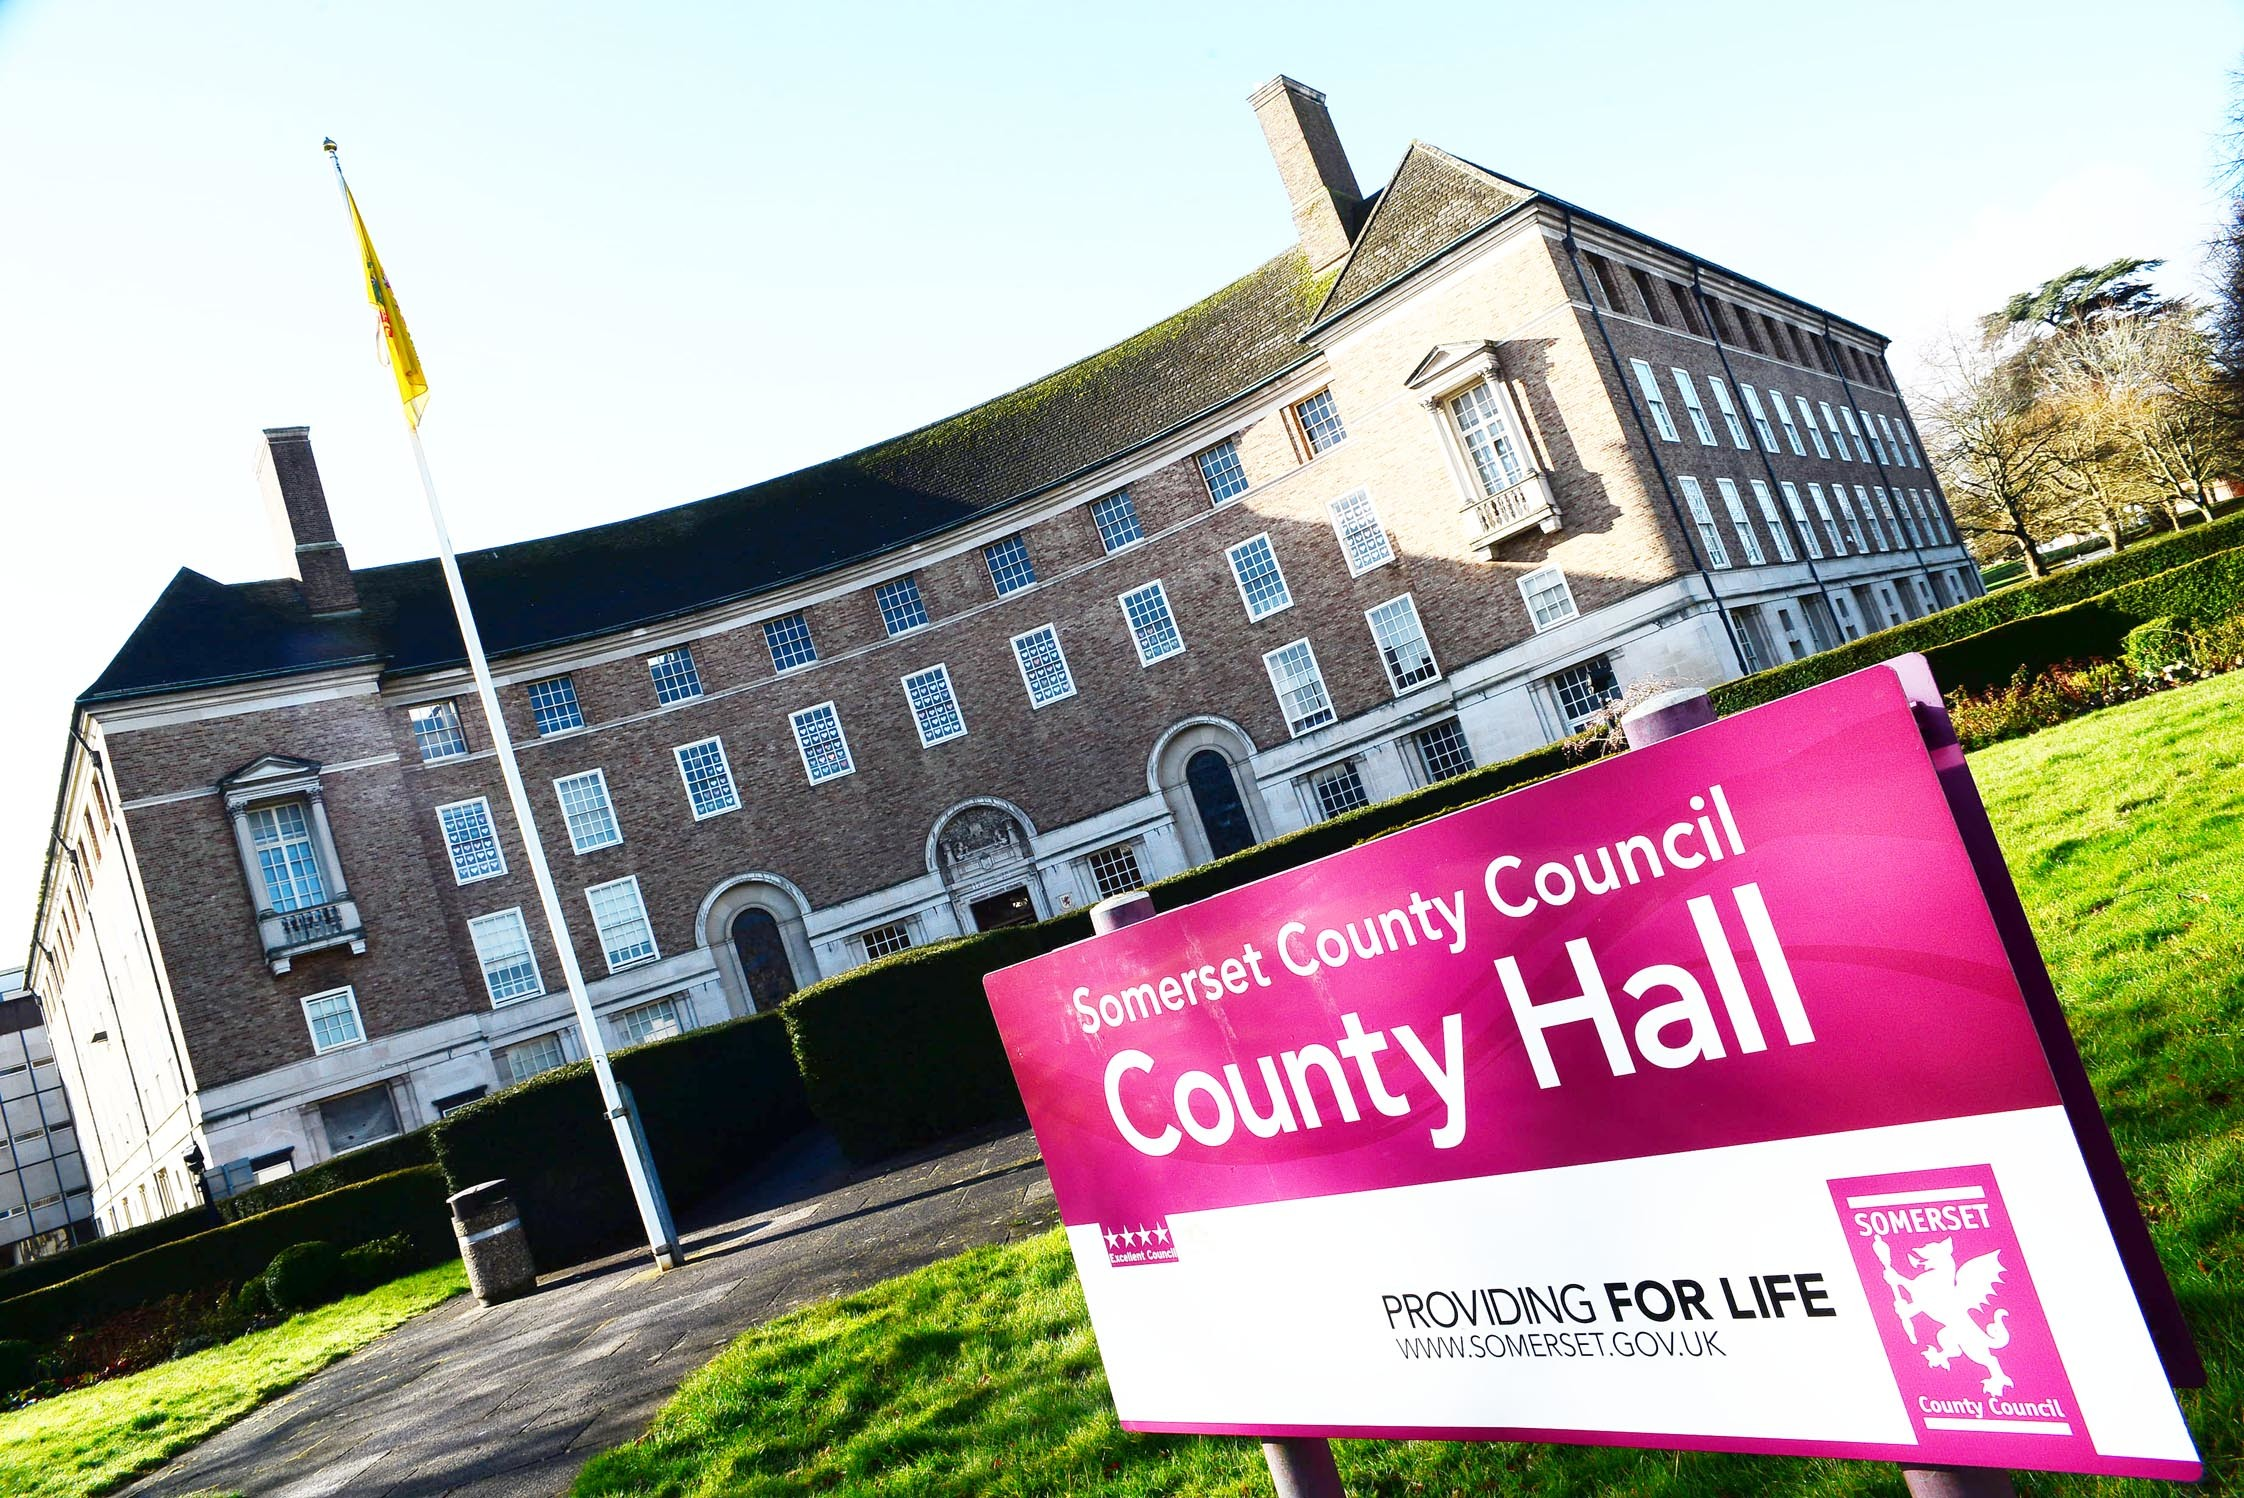 CHANGES: Council tax increasing across Somerset